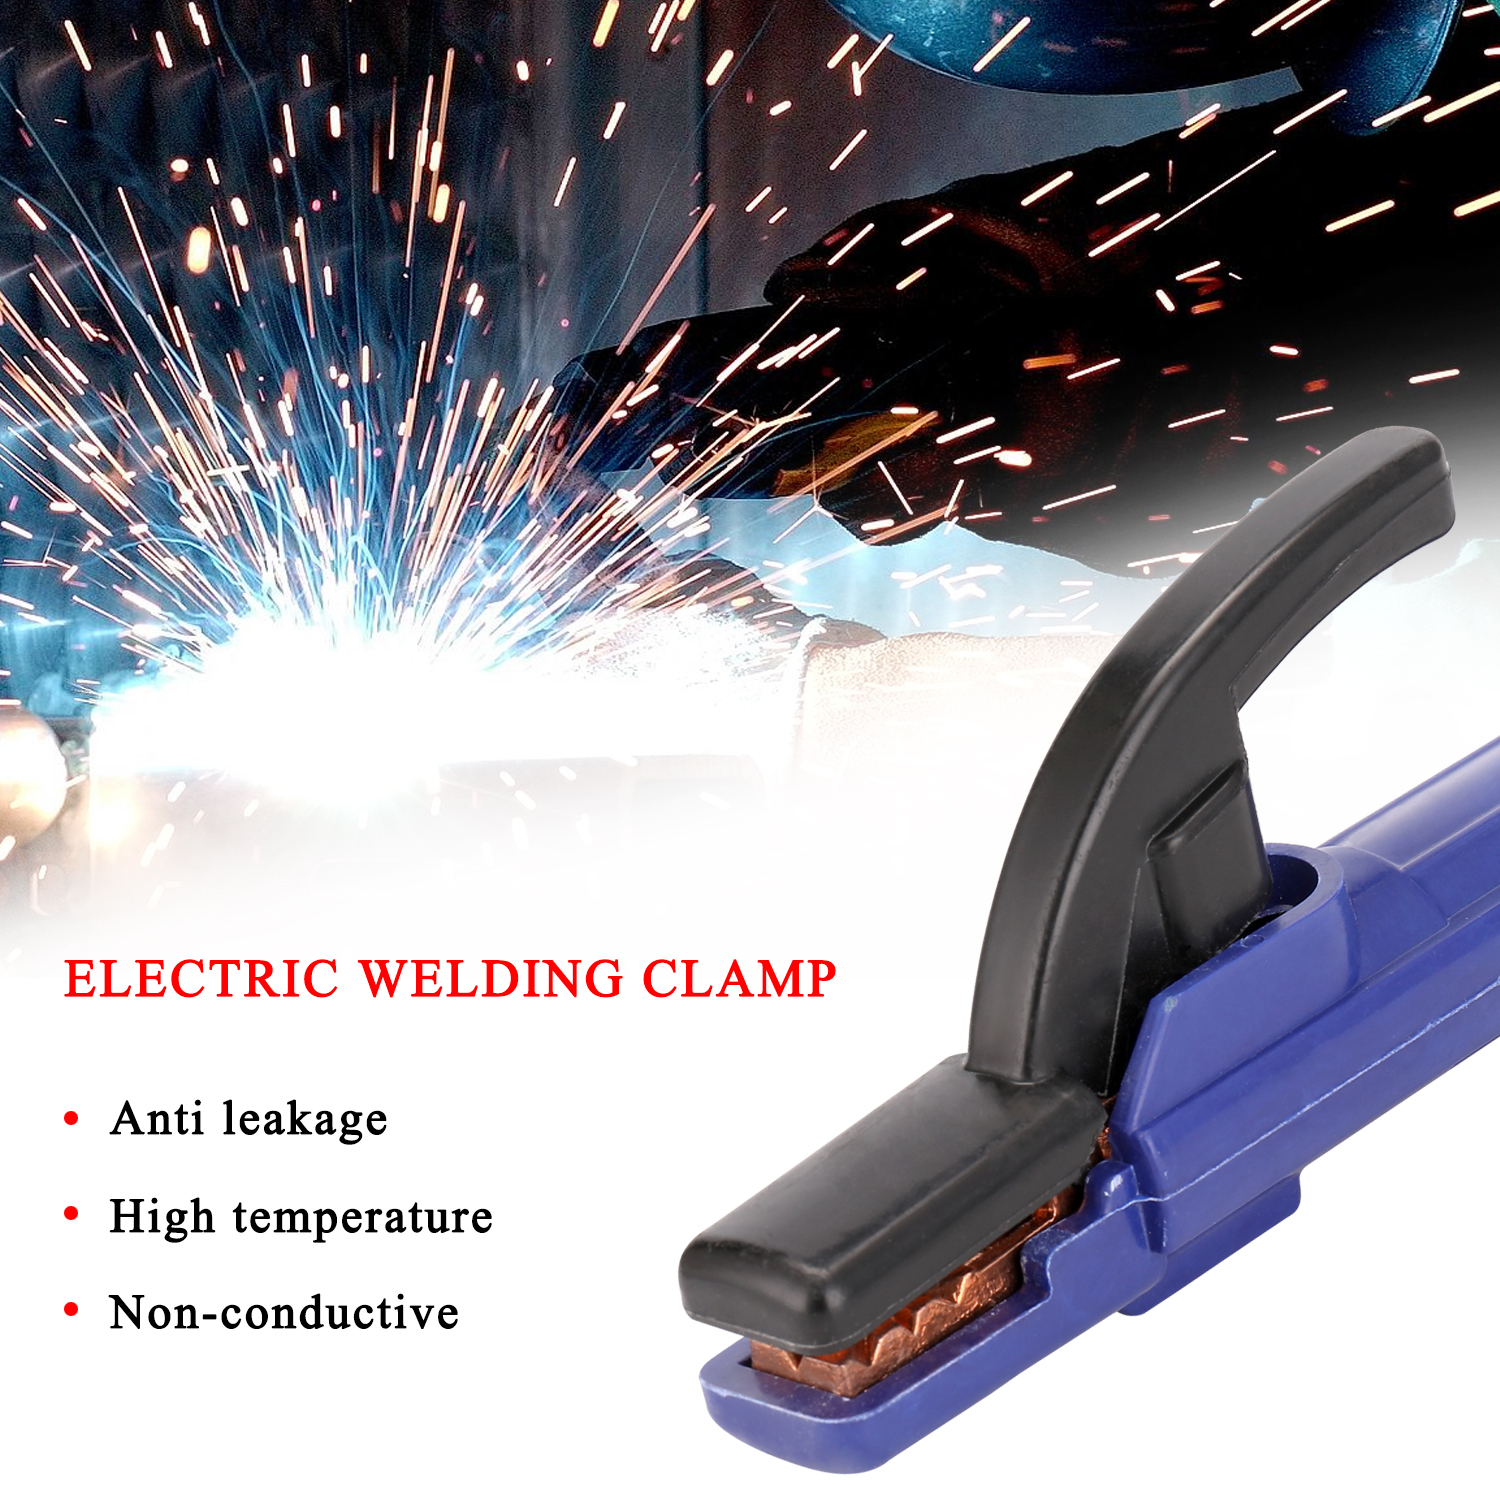 Practical Heat Resistant DC 300A Electric Welding Clamp Fit for Steel Structure Ship Factory Mining Electric Soldering Tool